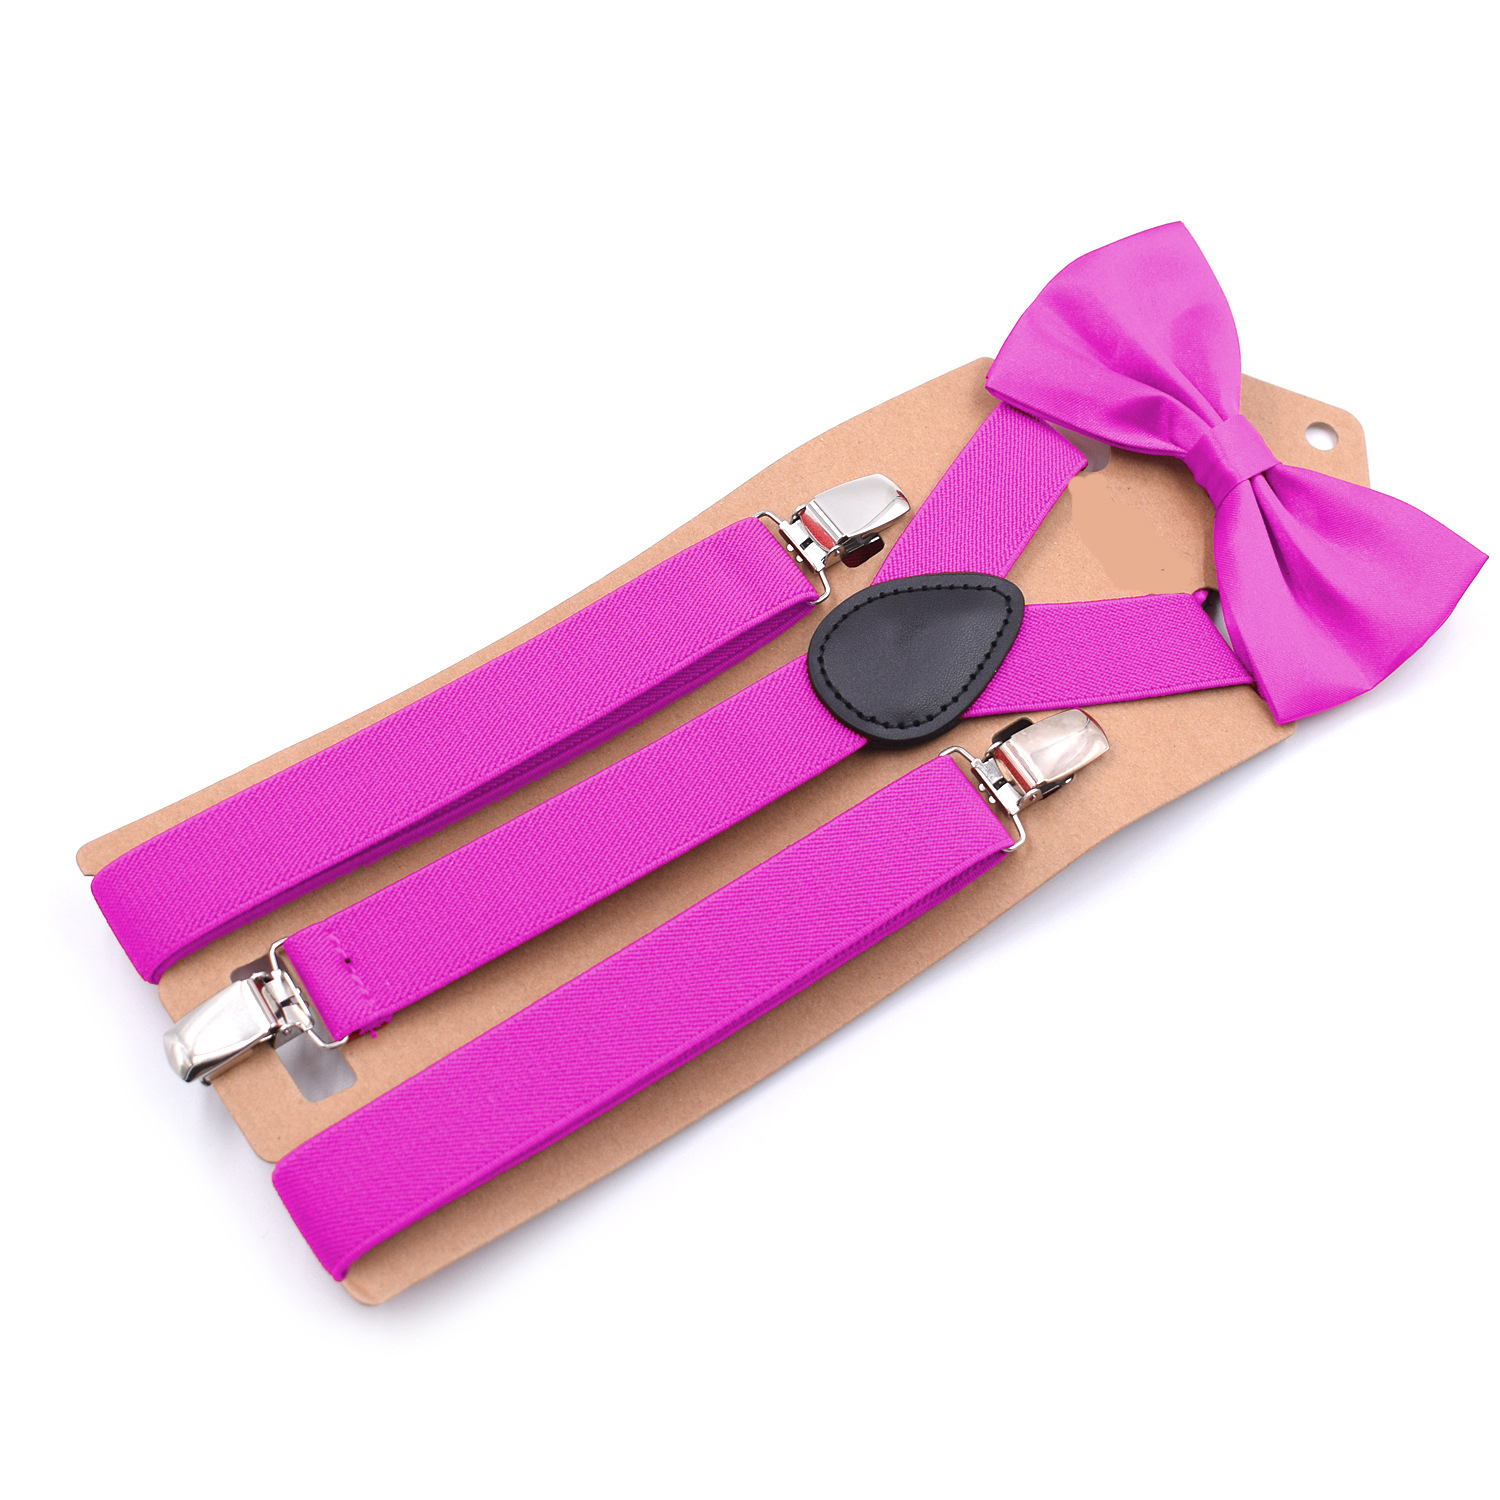 2019 Explosions Bow Tie Suit Three Clip Straps Unisex Style Strong Three Clips Adult Bow Tie Suit High Quality Fashion Suspender